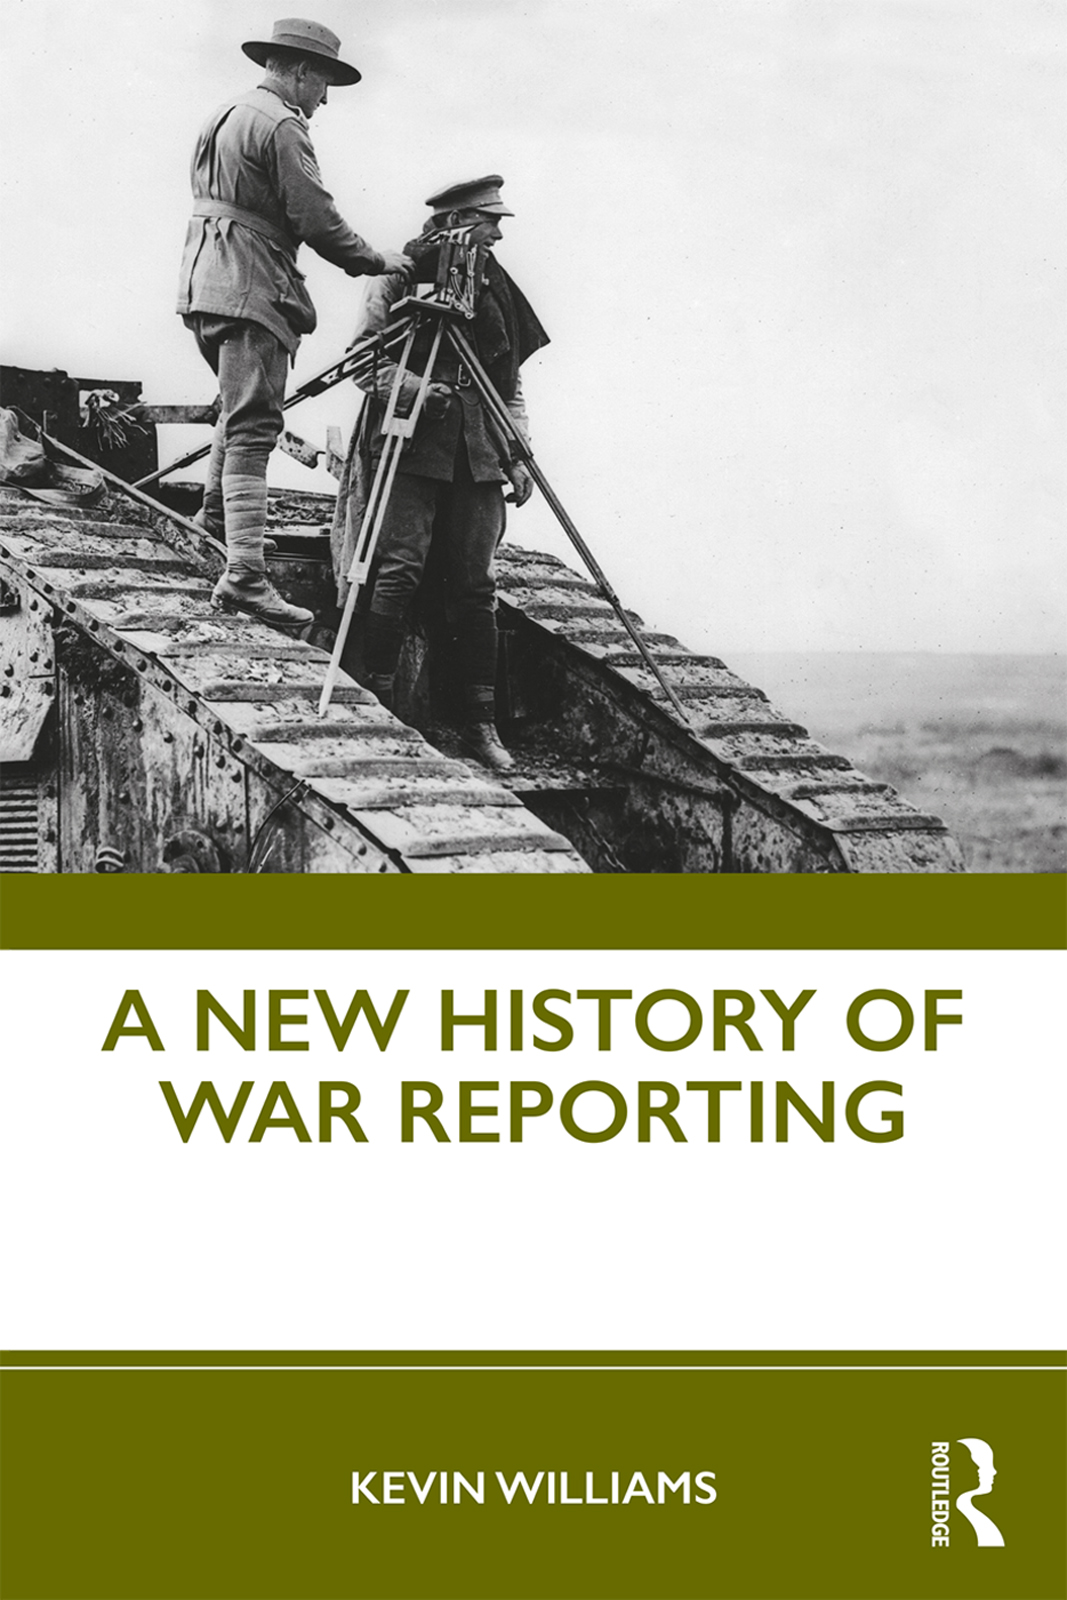 A New History of War Reporting book cover